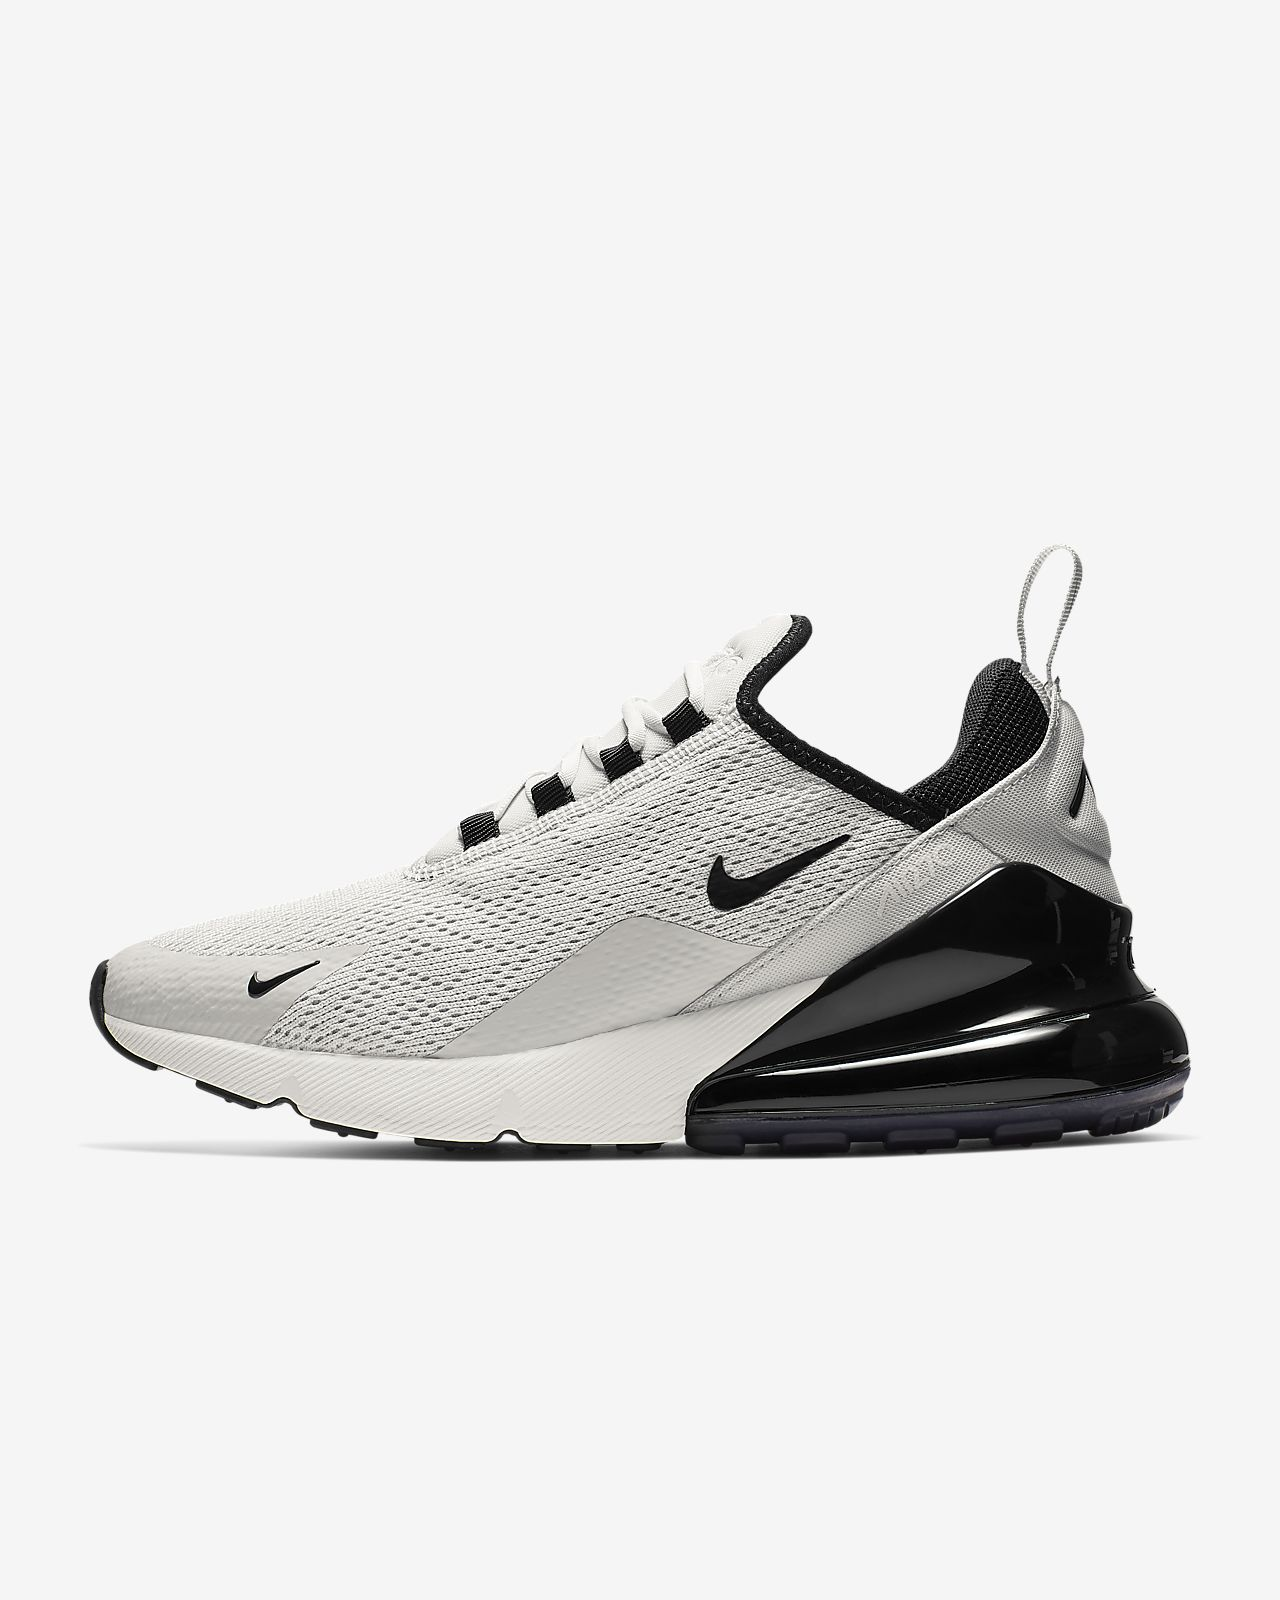 online store 7cd66 8554a ... Nike Air Max 270 Damenschuh